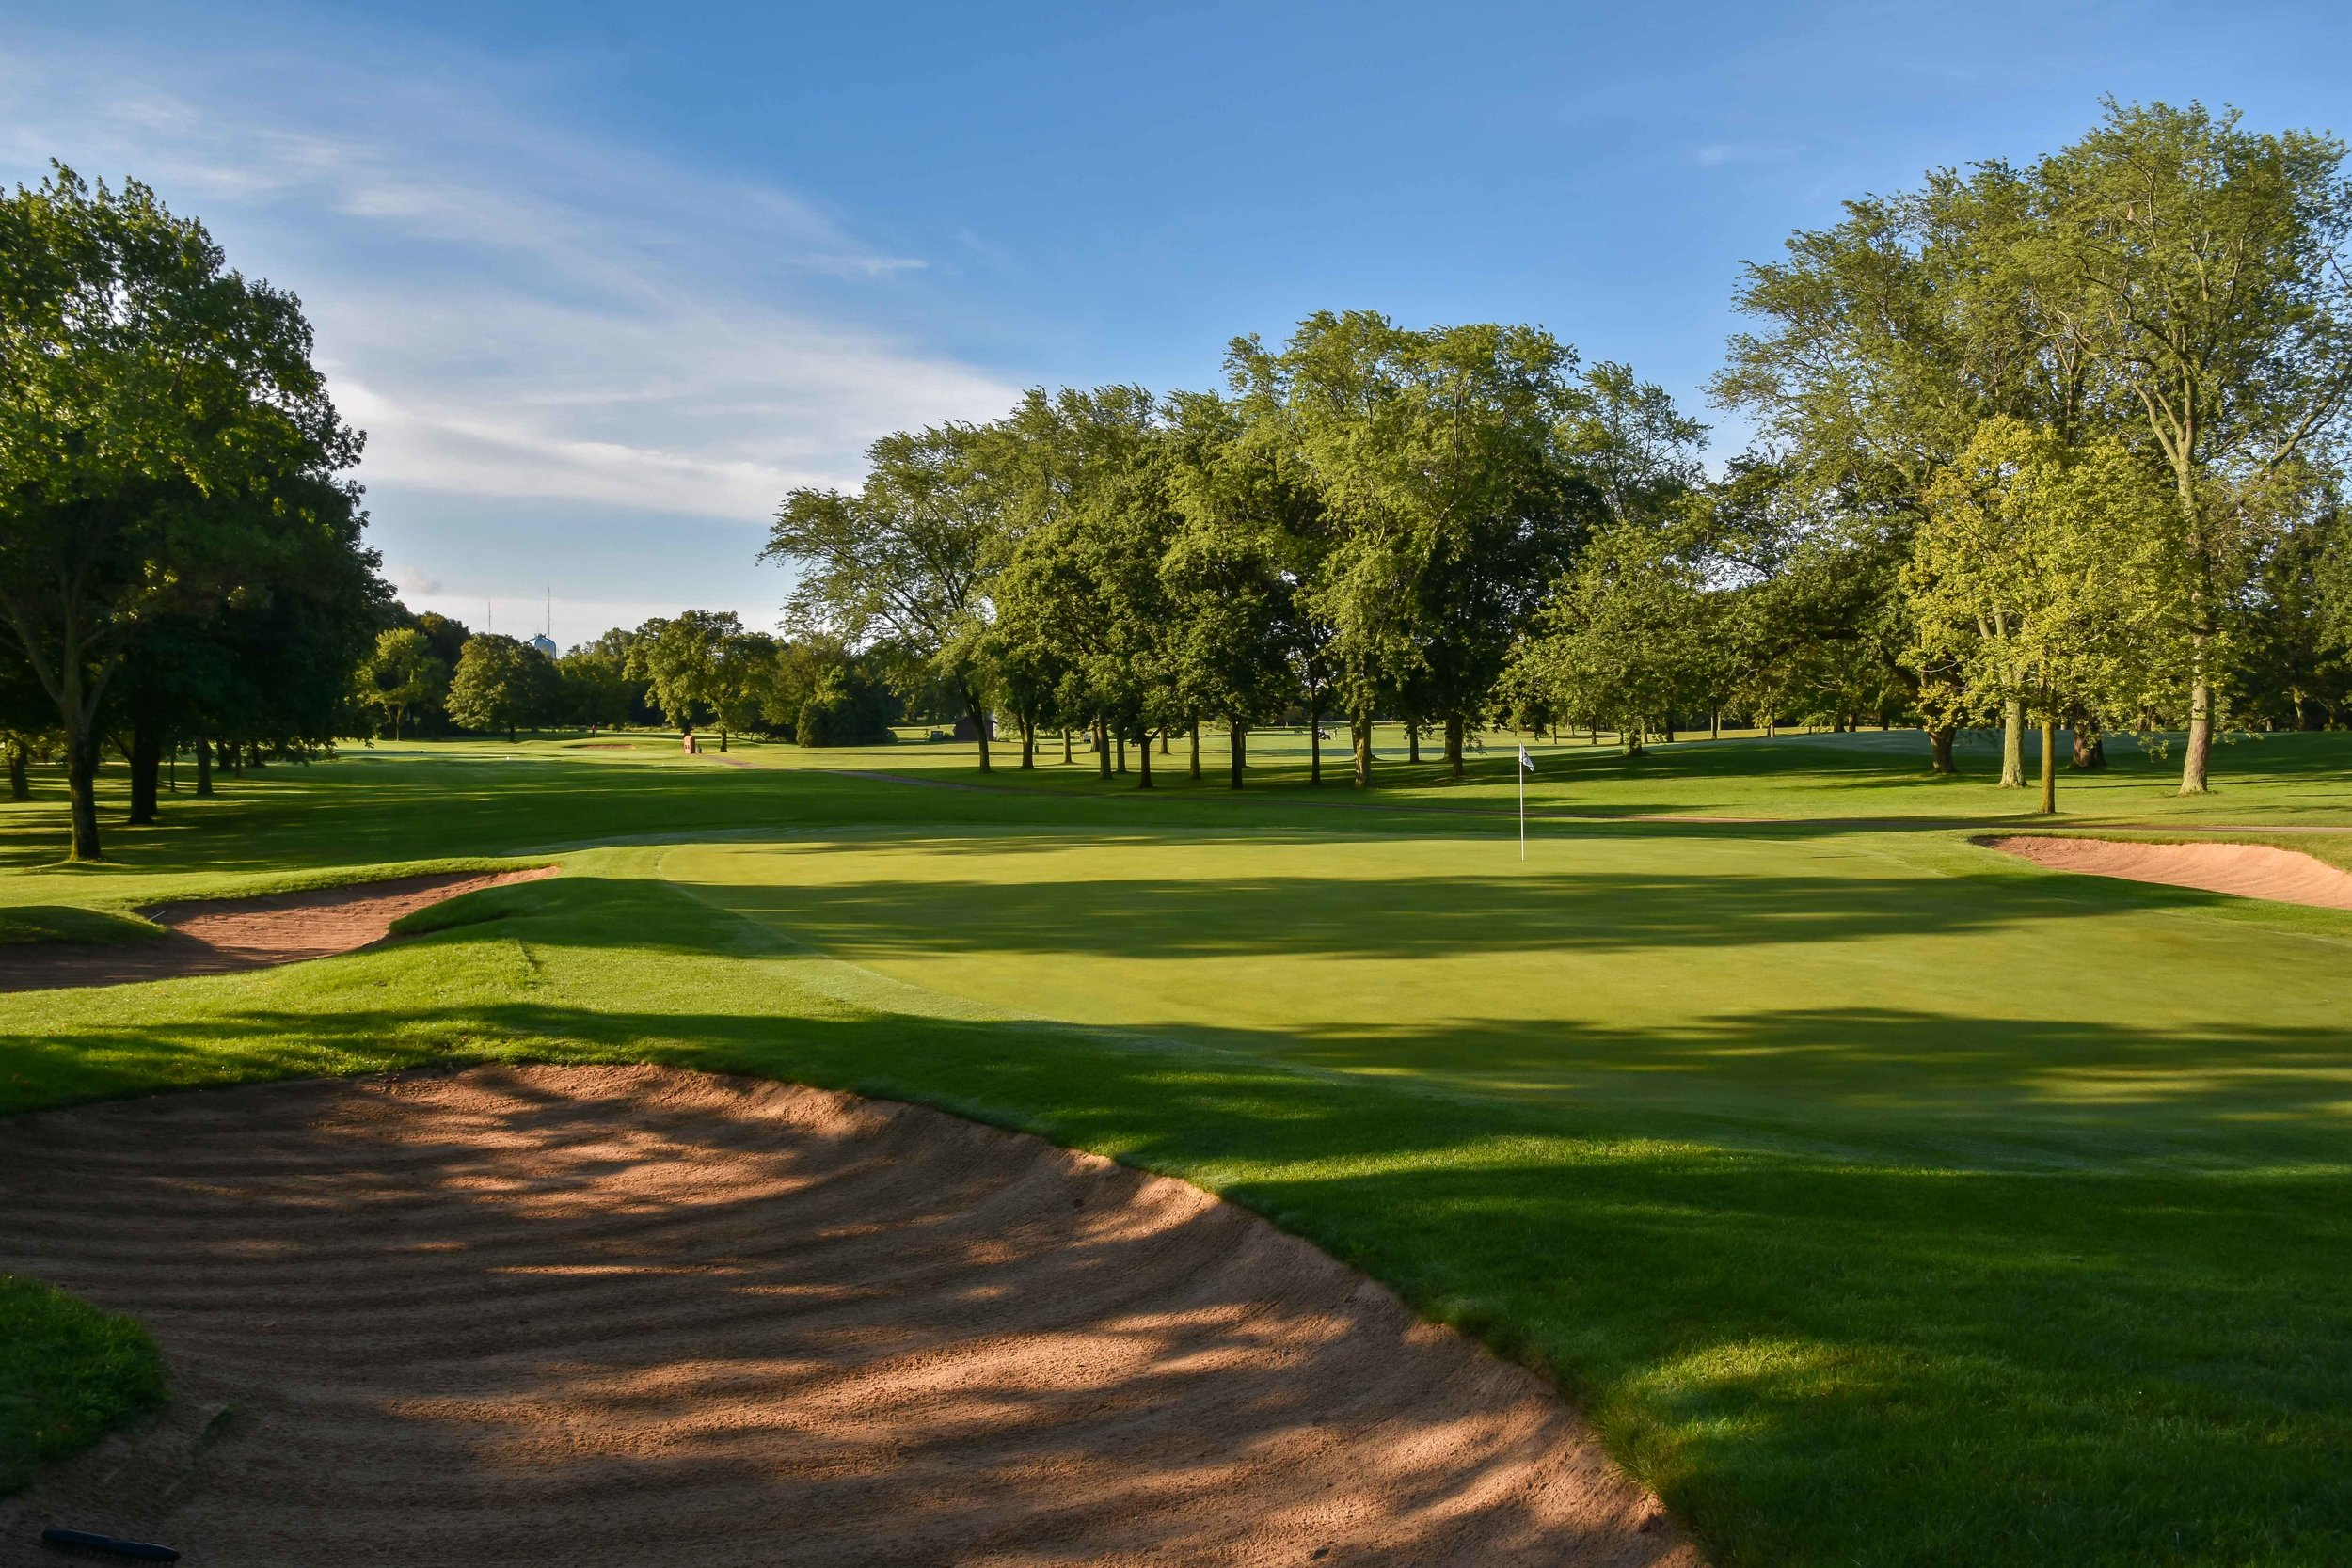 The 14th hole at Brown Deer Park is the site of Tiger Woods' first hole-in-one as a PGA Tour professional.